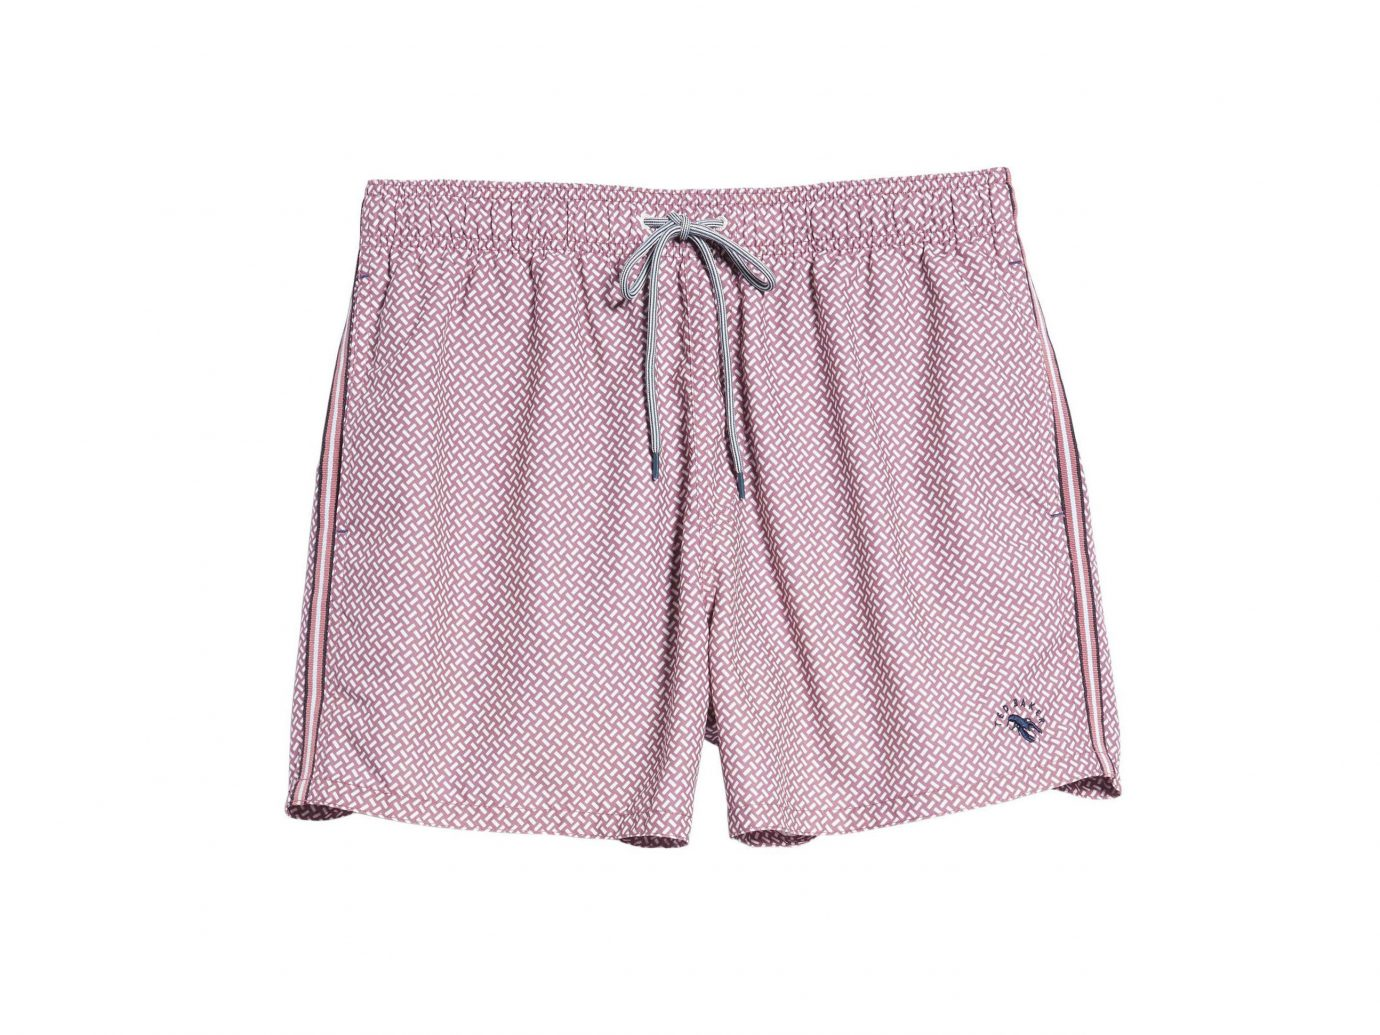 Beach Style + Design Travel Shop active shorts pink trunks shorts product bermuda shorts underpants pattern magenta swimsuit bottom accessory